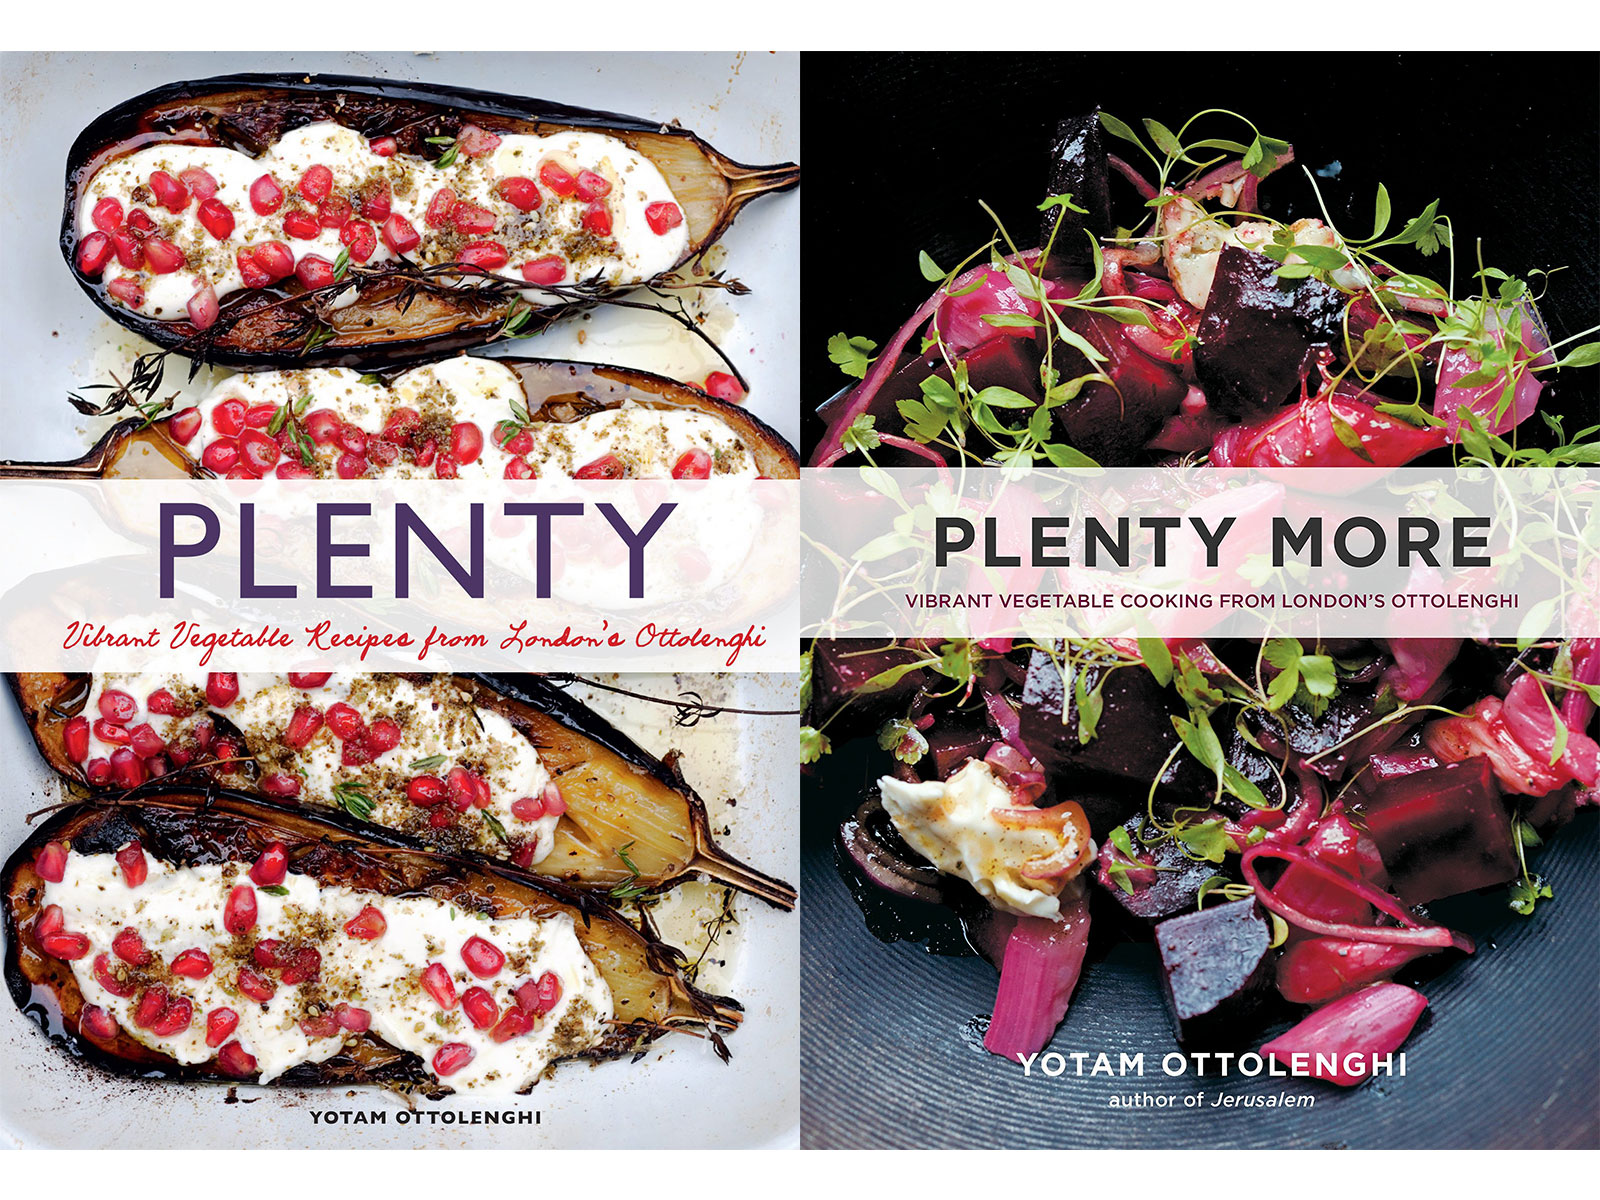 Plenty and Plenty More by Yotam Ottolenghi